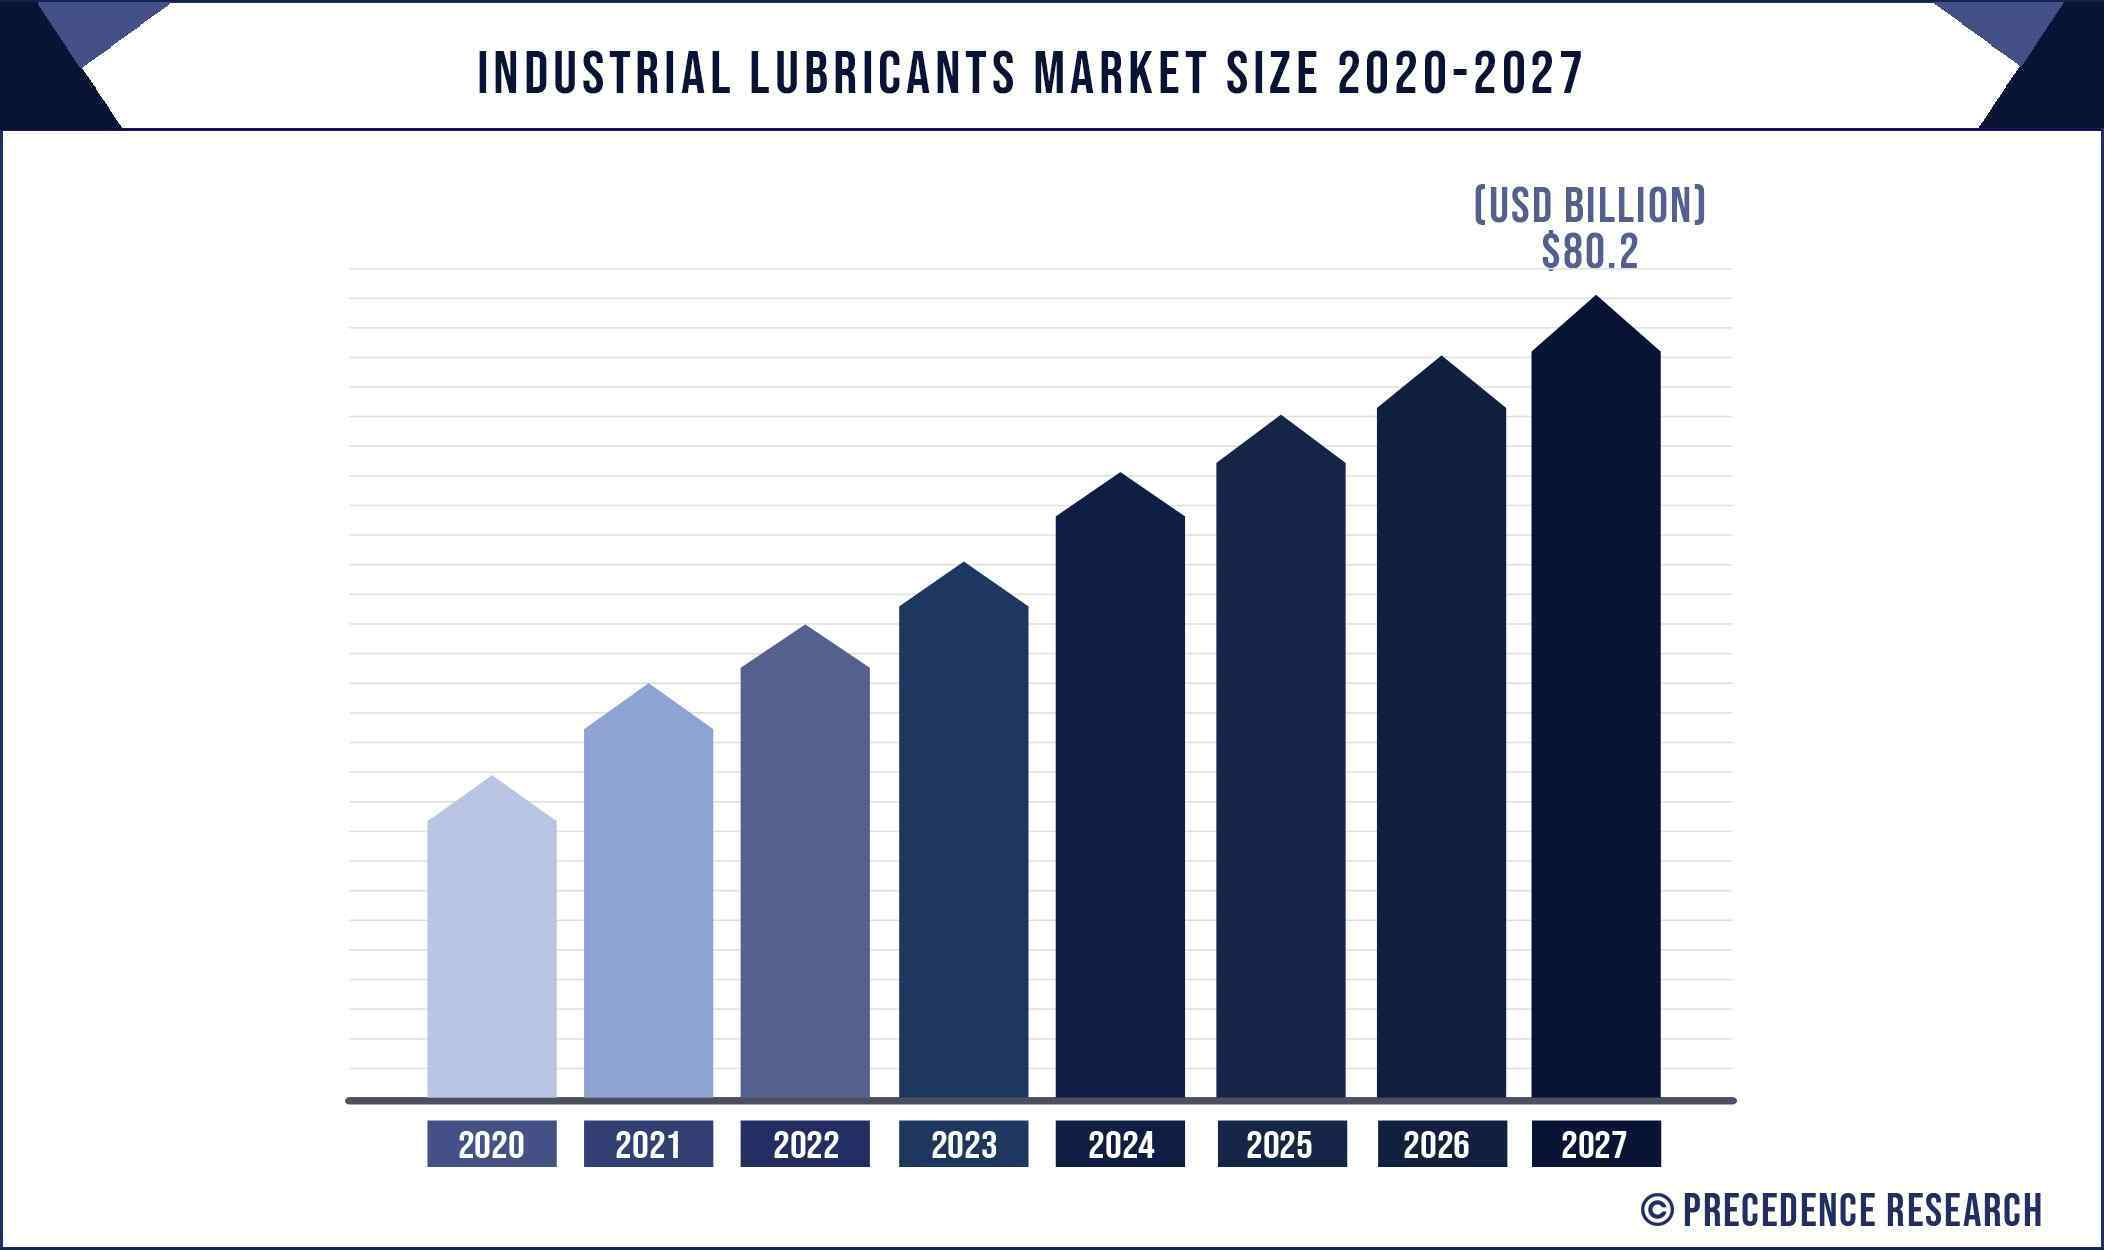 Industrial Lubricants Market Size 2020 to 2027